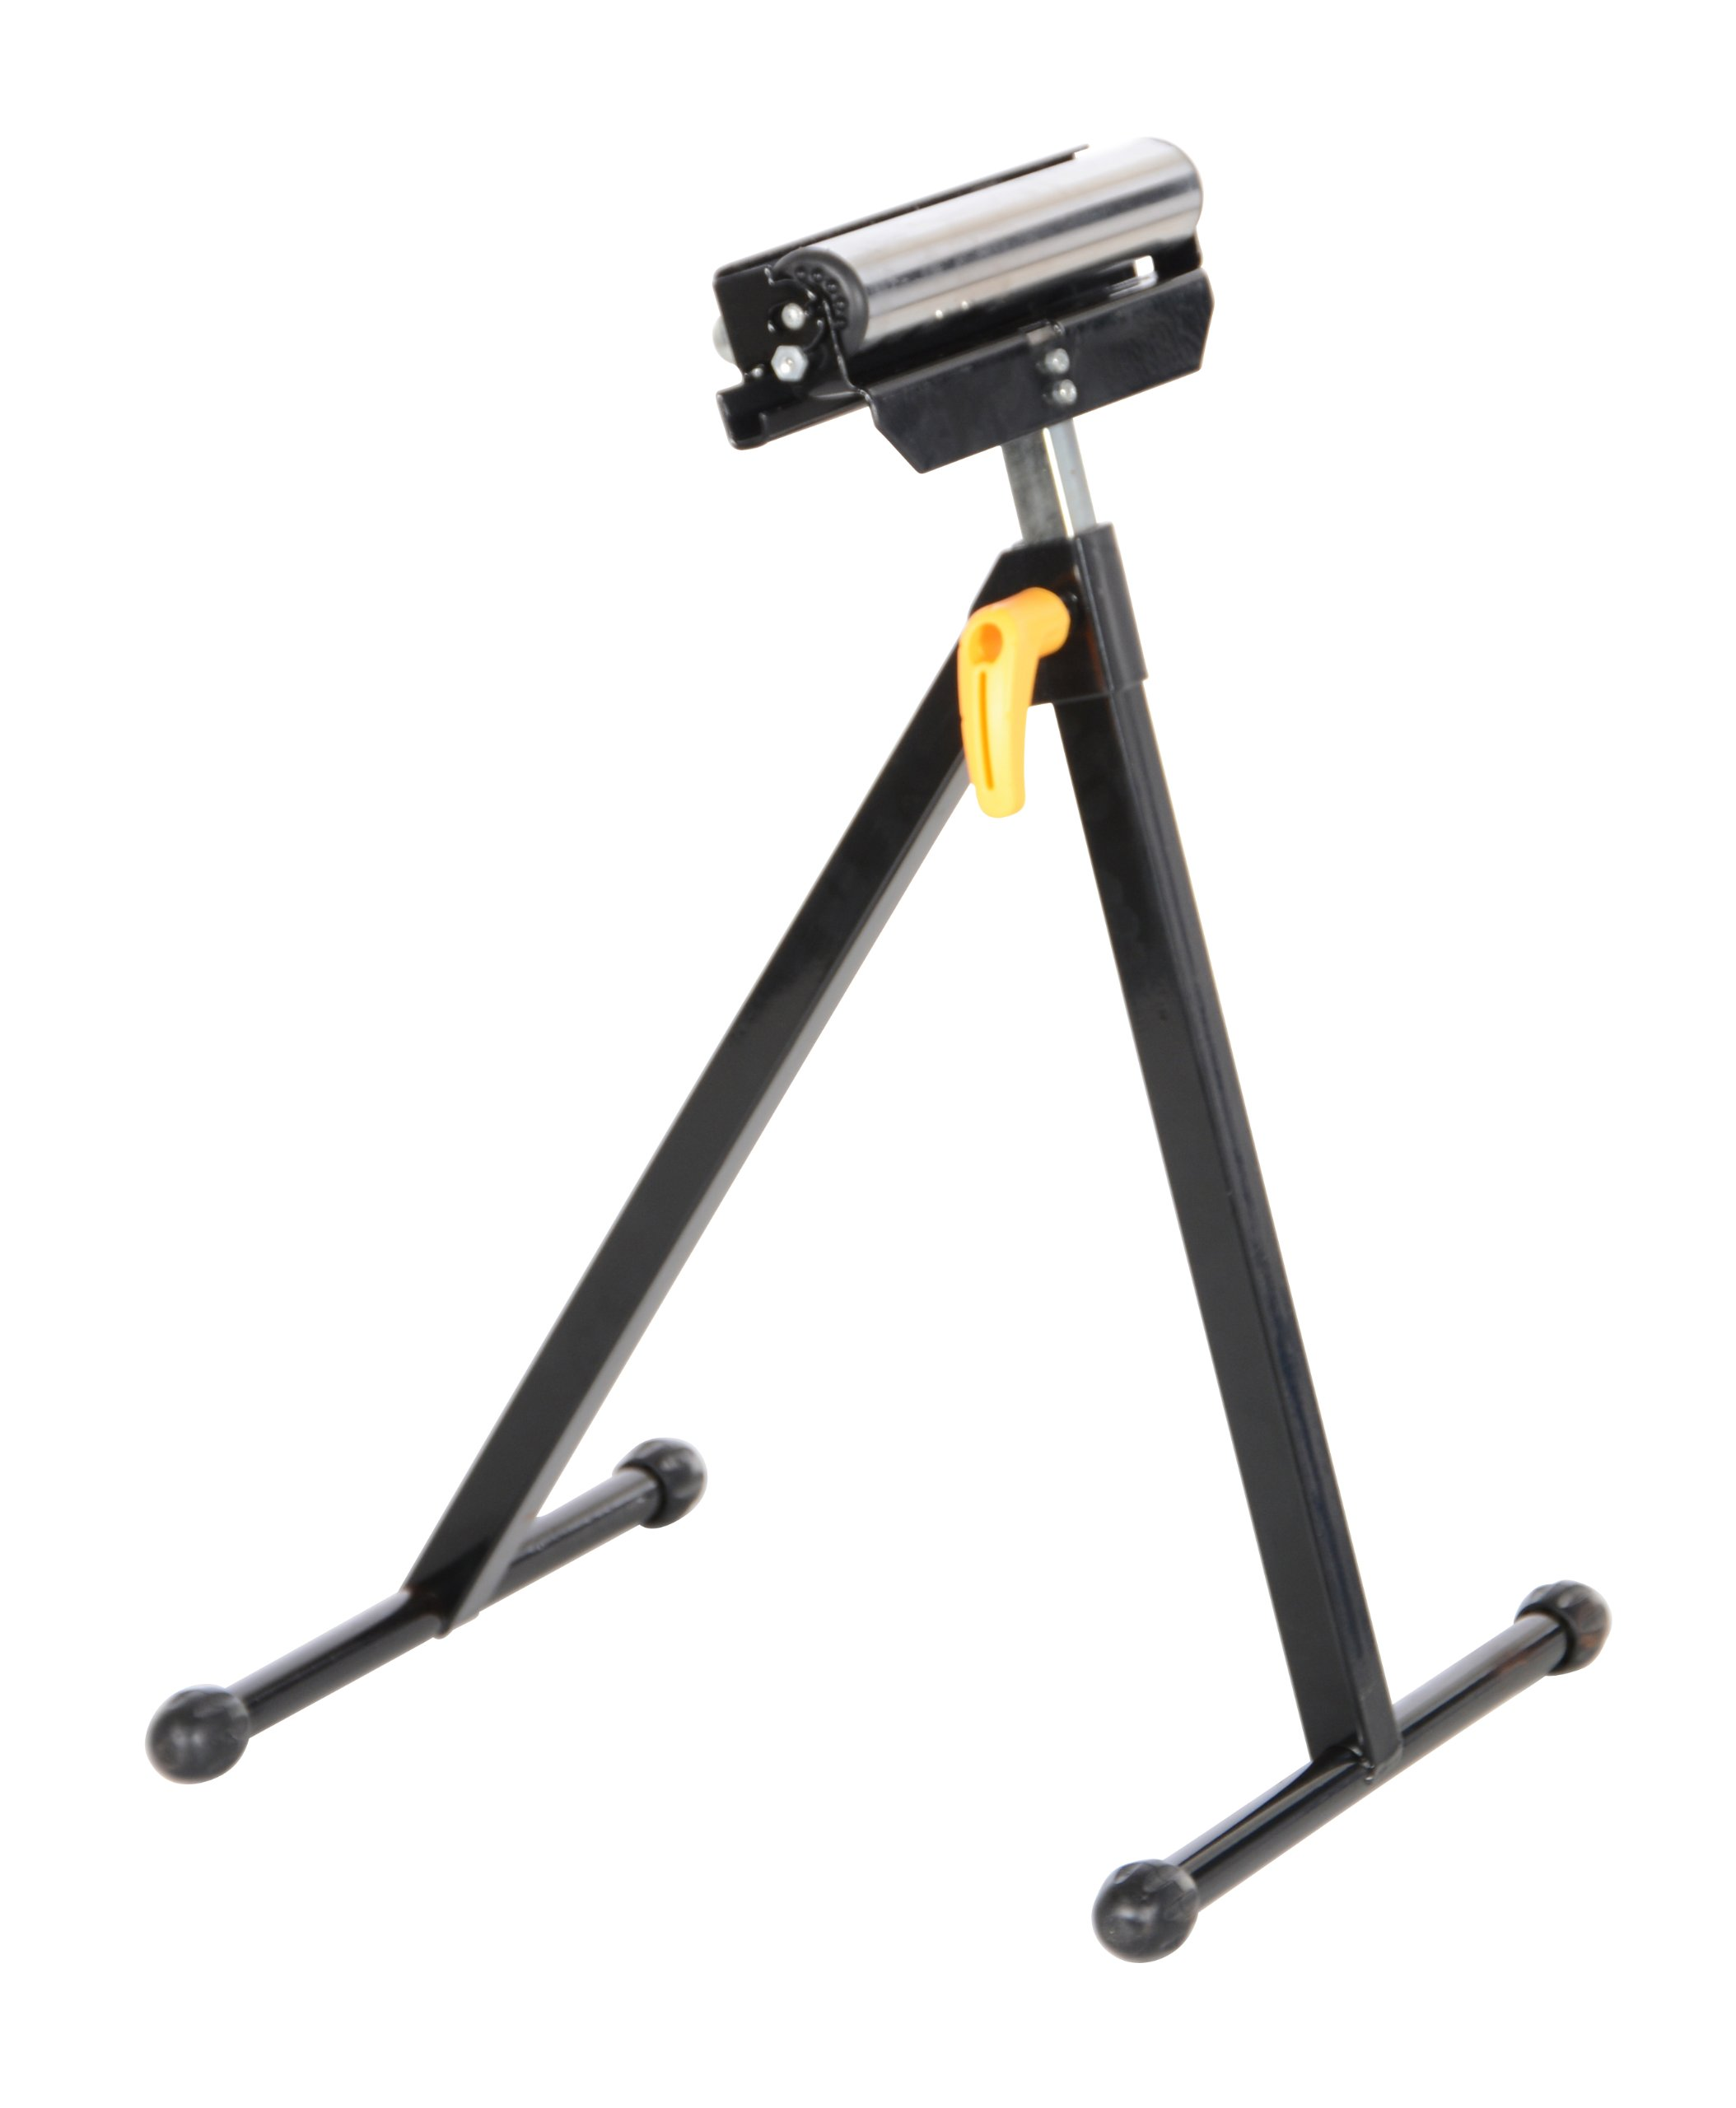 Vestil STAND-MF Multi- Function Ball Roller Stand, 28'' - 44'' Height, 198 lbs Capacity